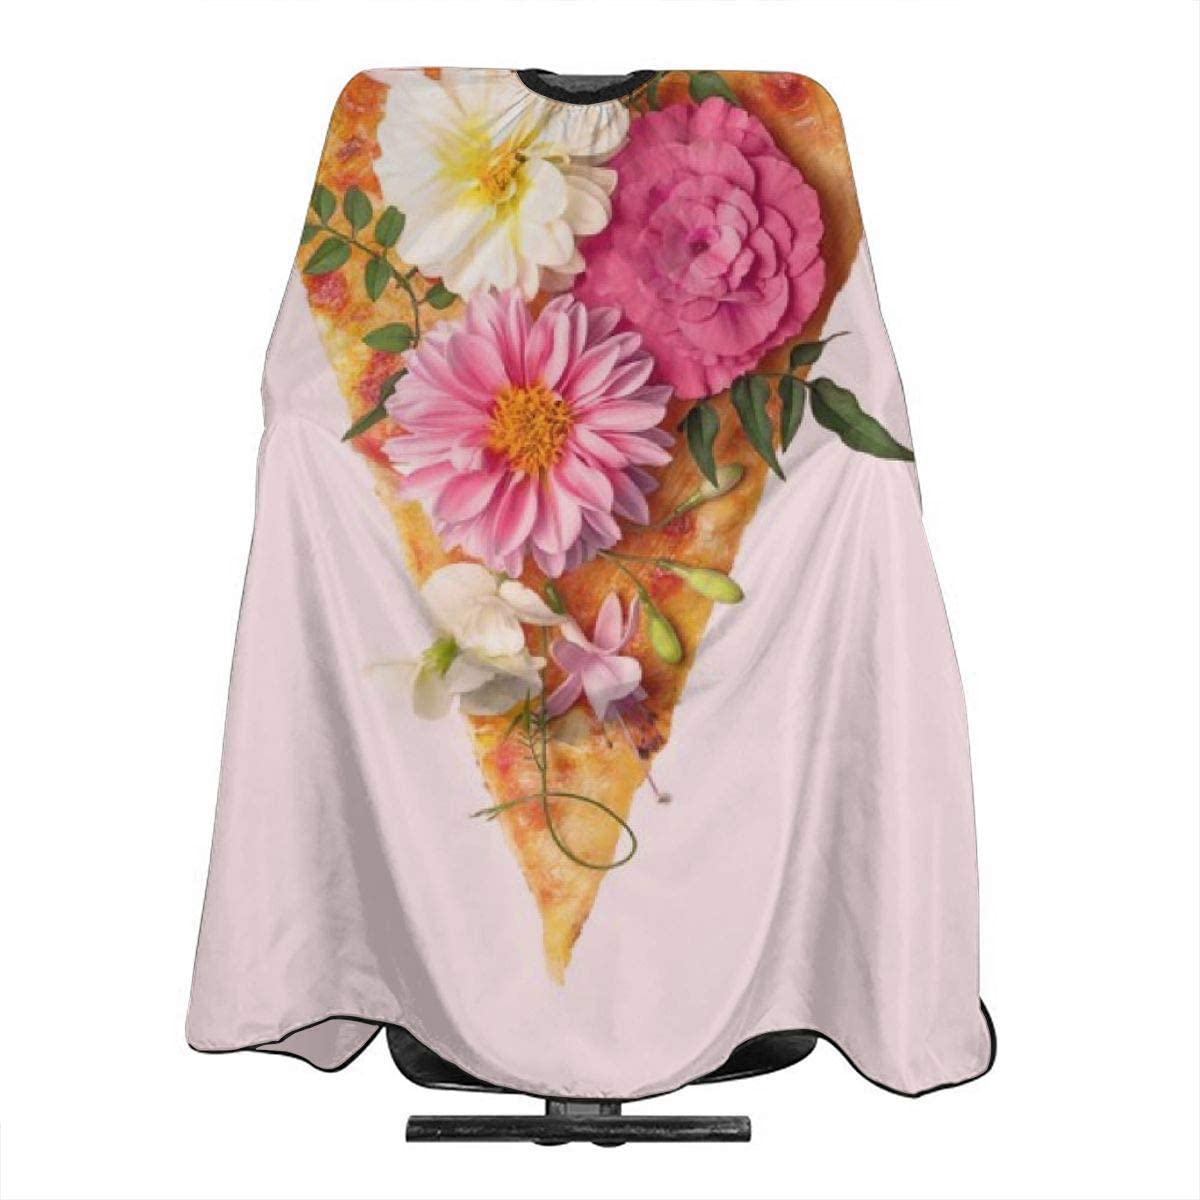 Floral Pizza Haircut Hairdressing Cape Cloth Apron Hair Styling Hairdresser Cape Barber Salon Amazon Co Uk Beauty